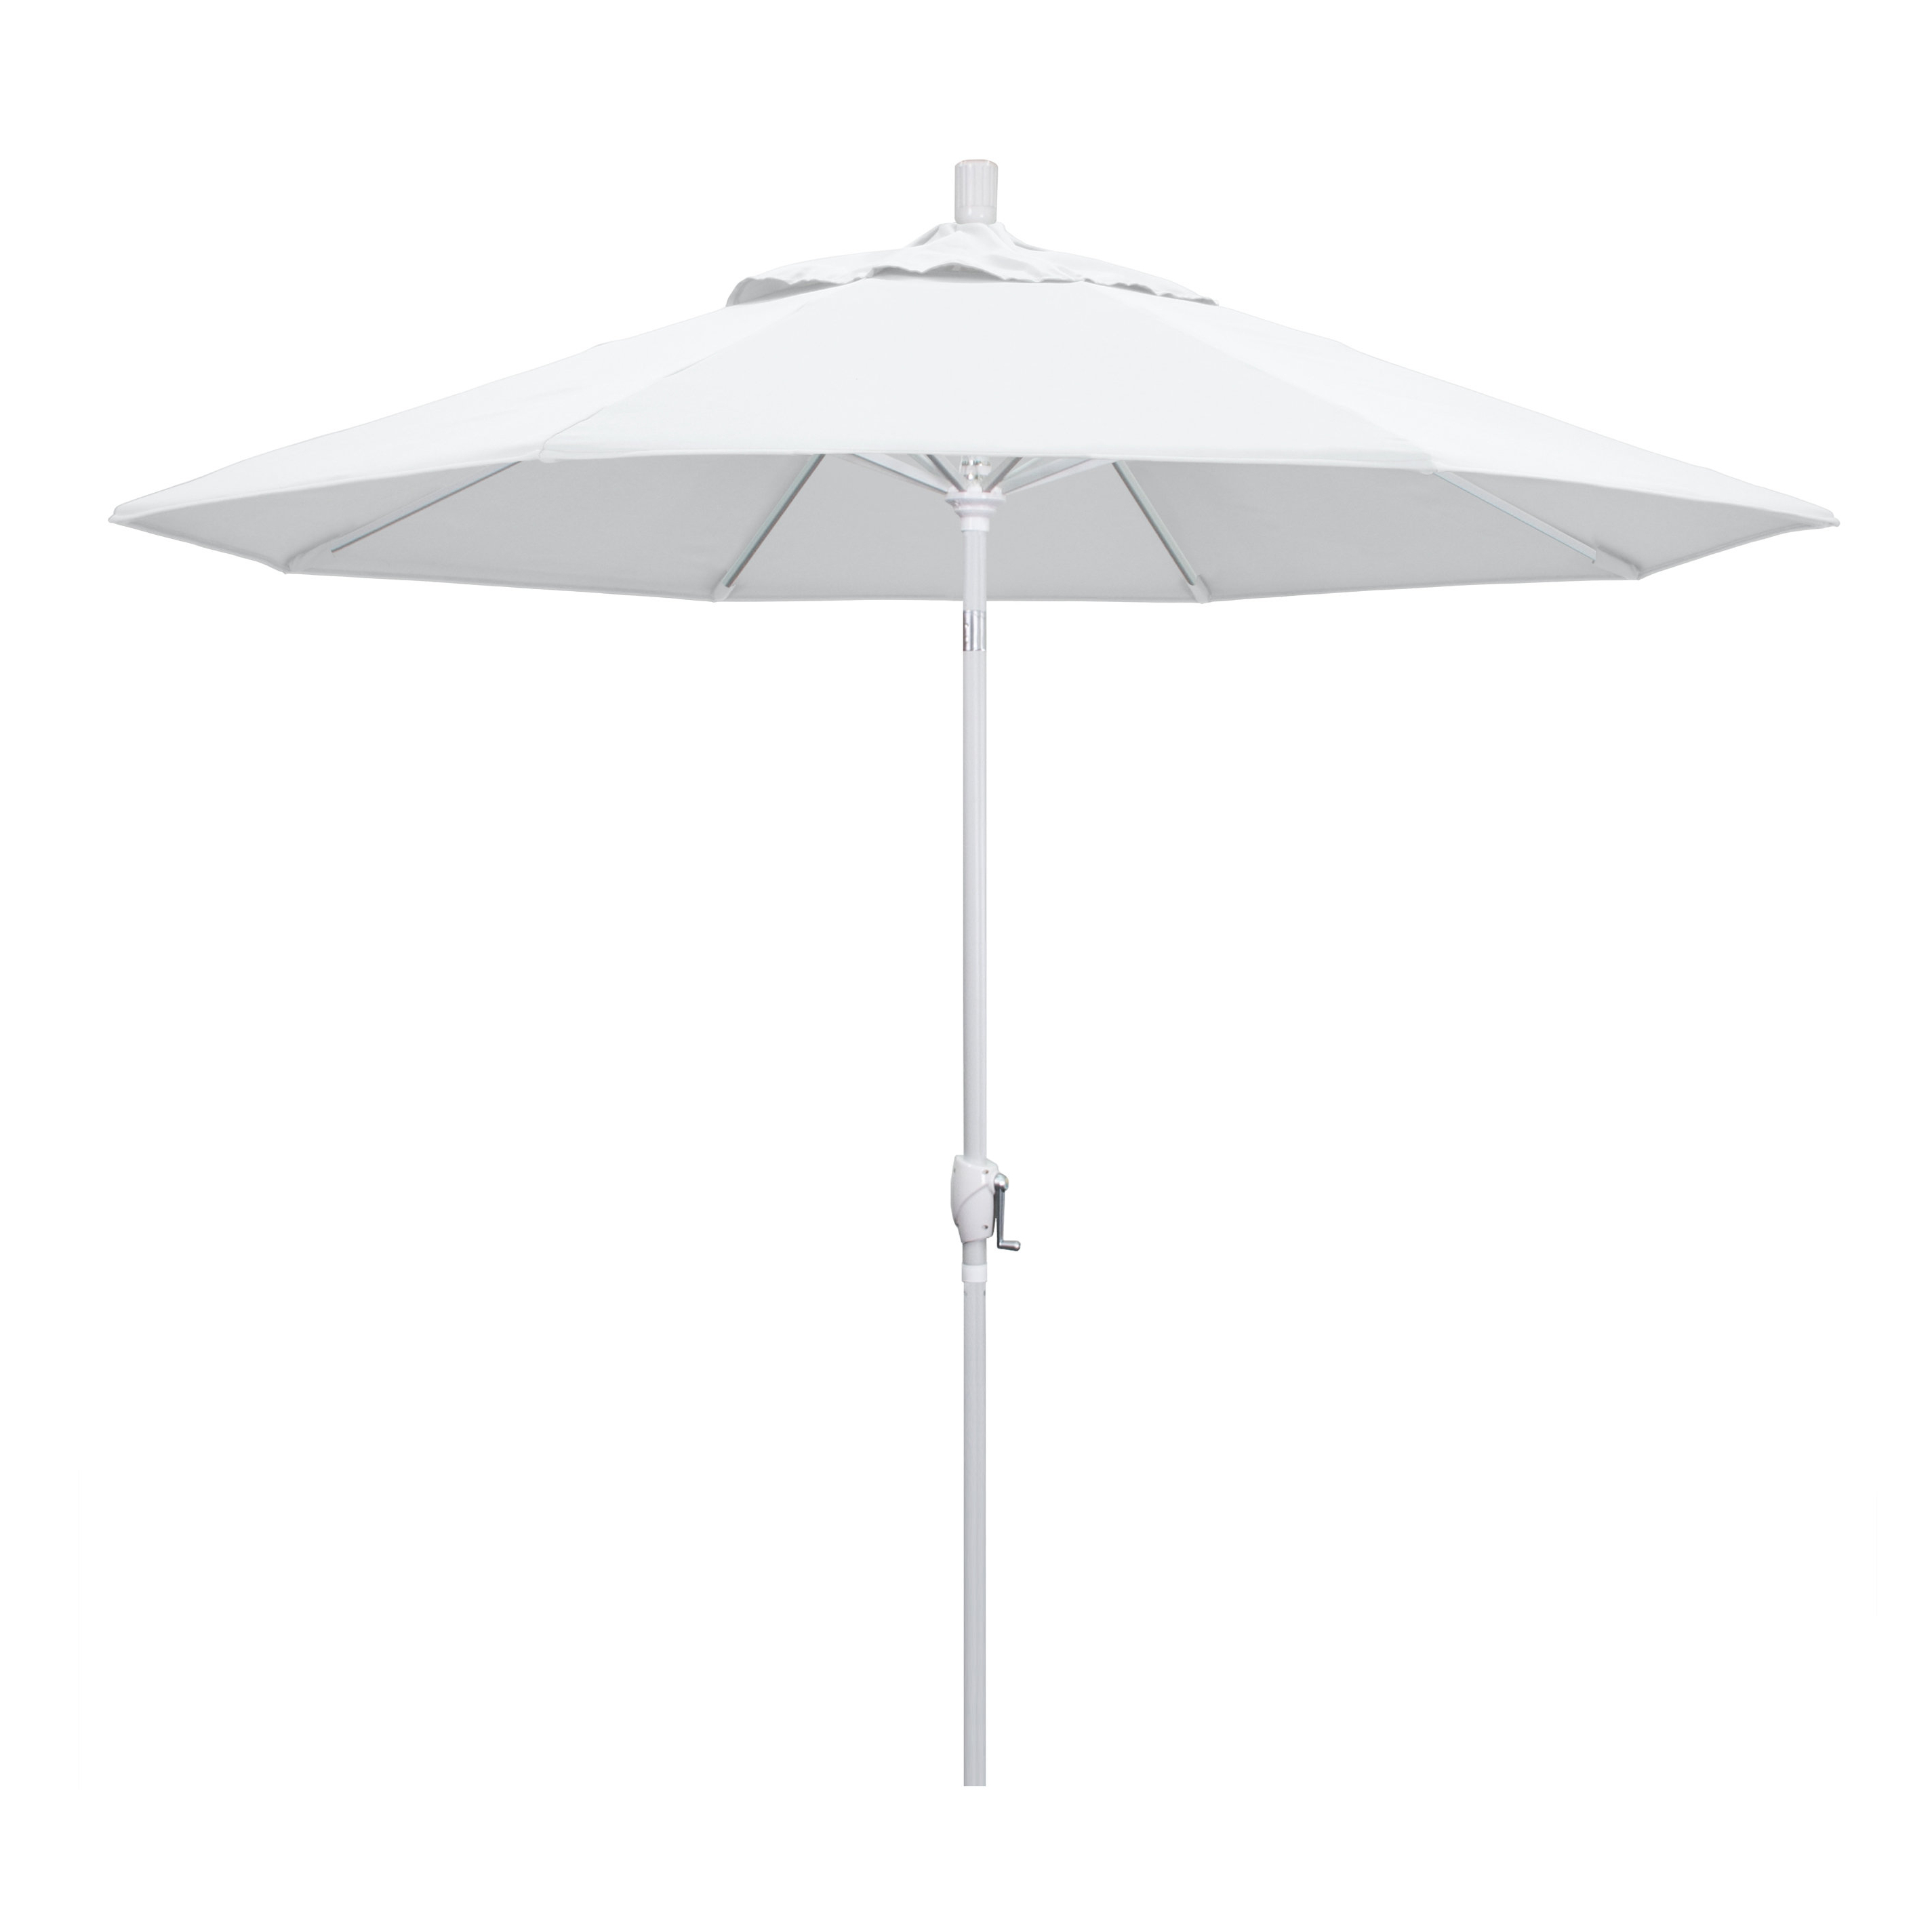 Darby Home Co Wallach 9' Market Umbrella Throughout Most Recently Released Monty Half Market Umbrellas (View 5 of 20)